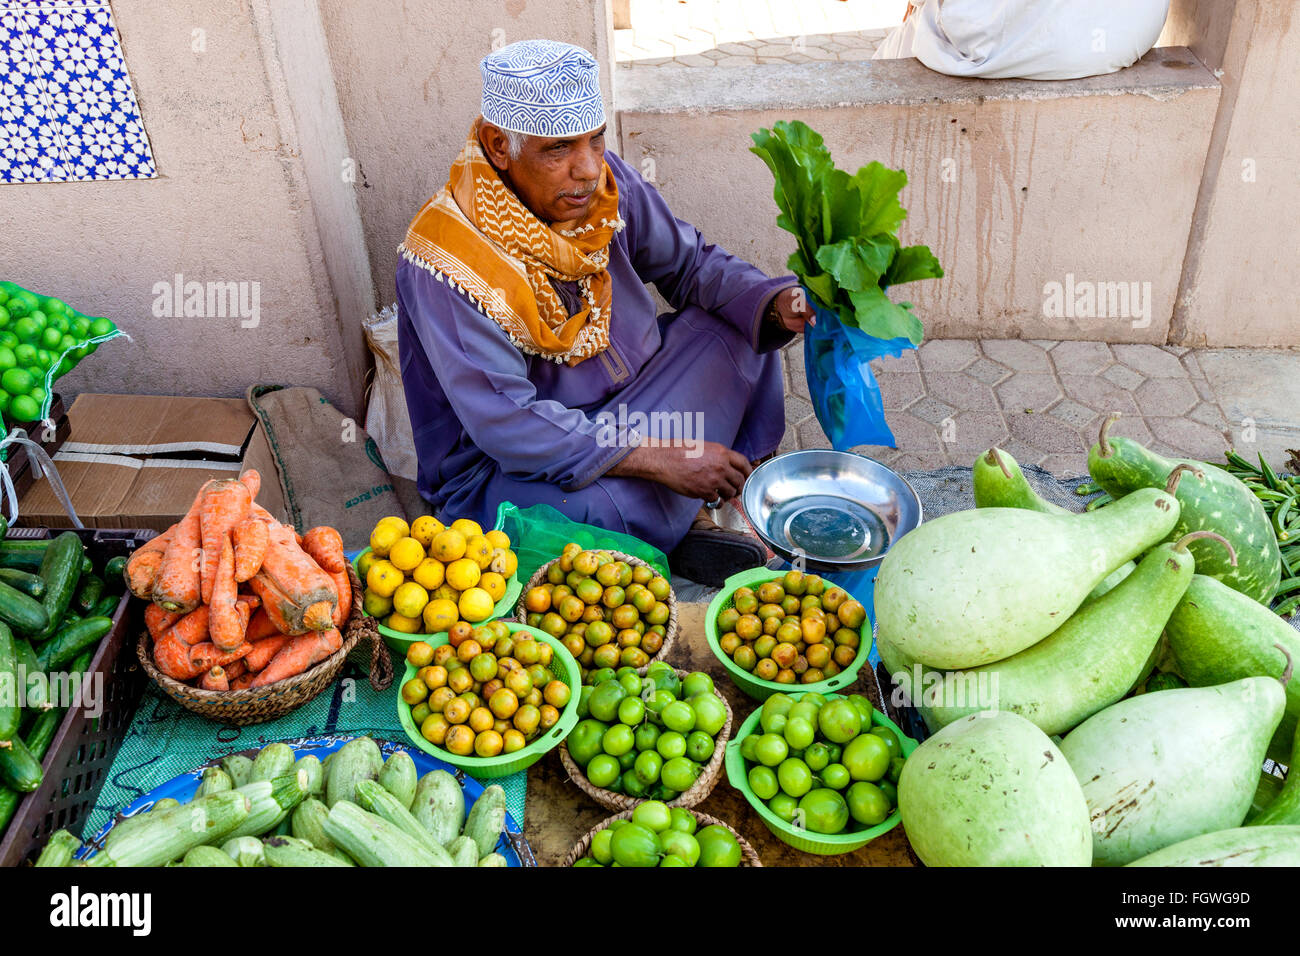 Fruit and Vegetable Market At The Nizwa Souk, Nizwa, Ad Dakhiliyah Region, Oman - Stock Image